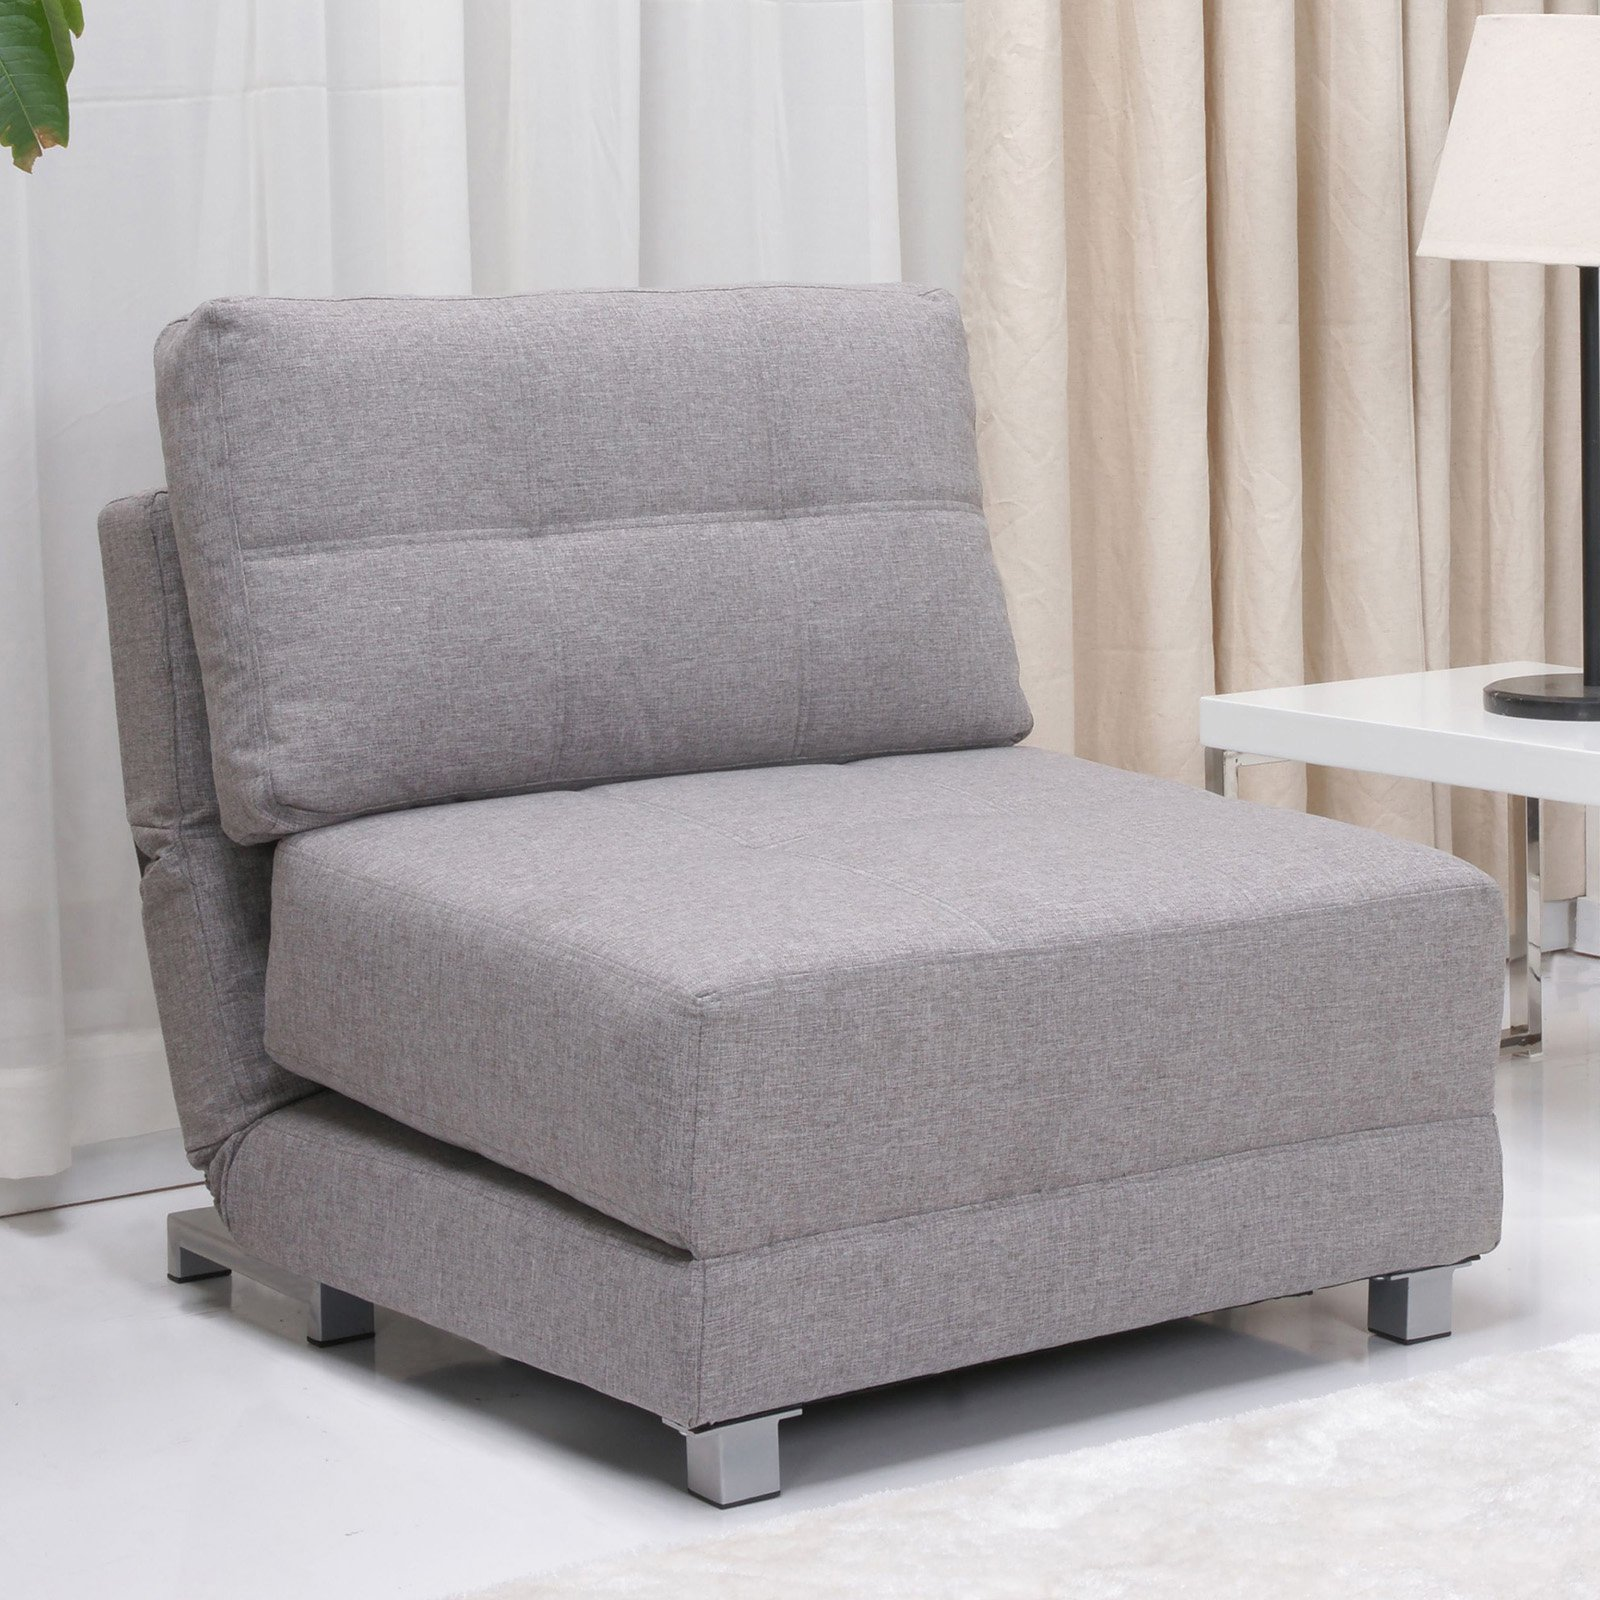 Gold Sparrow New York Convertible Fabric Chair Bed